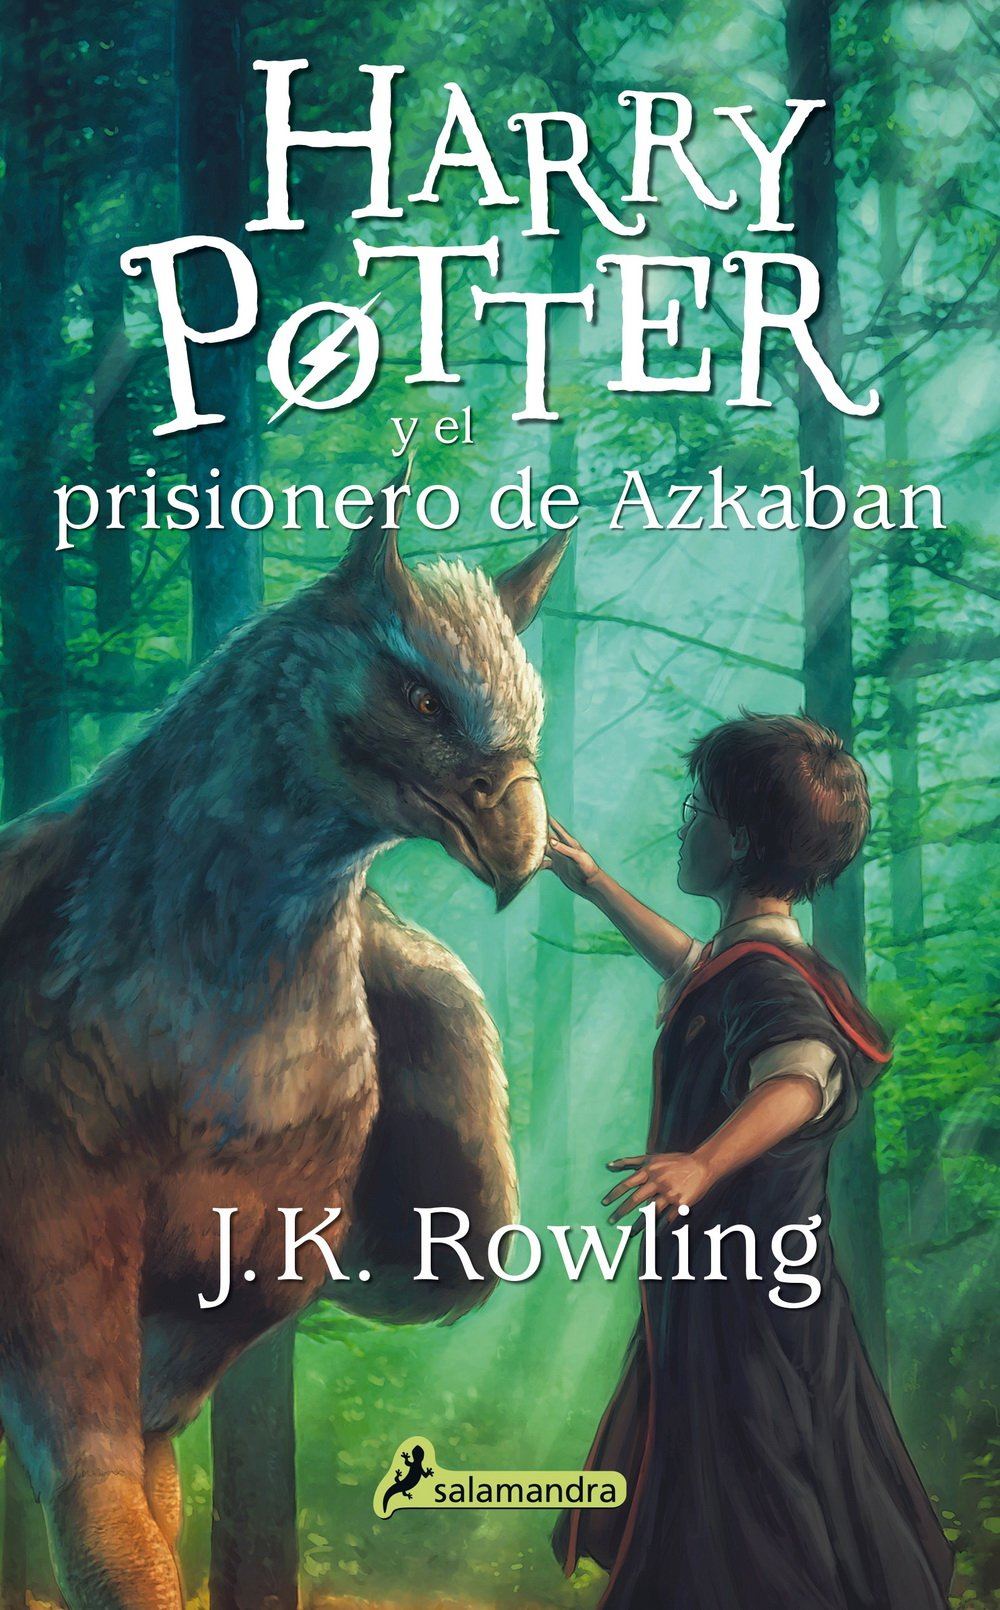 Harry Potter y El Prisionero de Azcaban.jpg